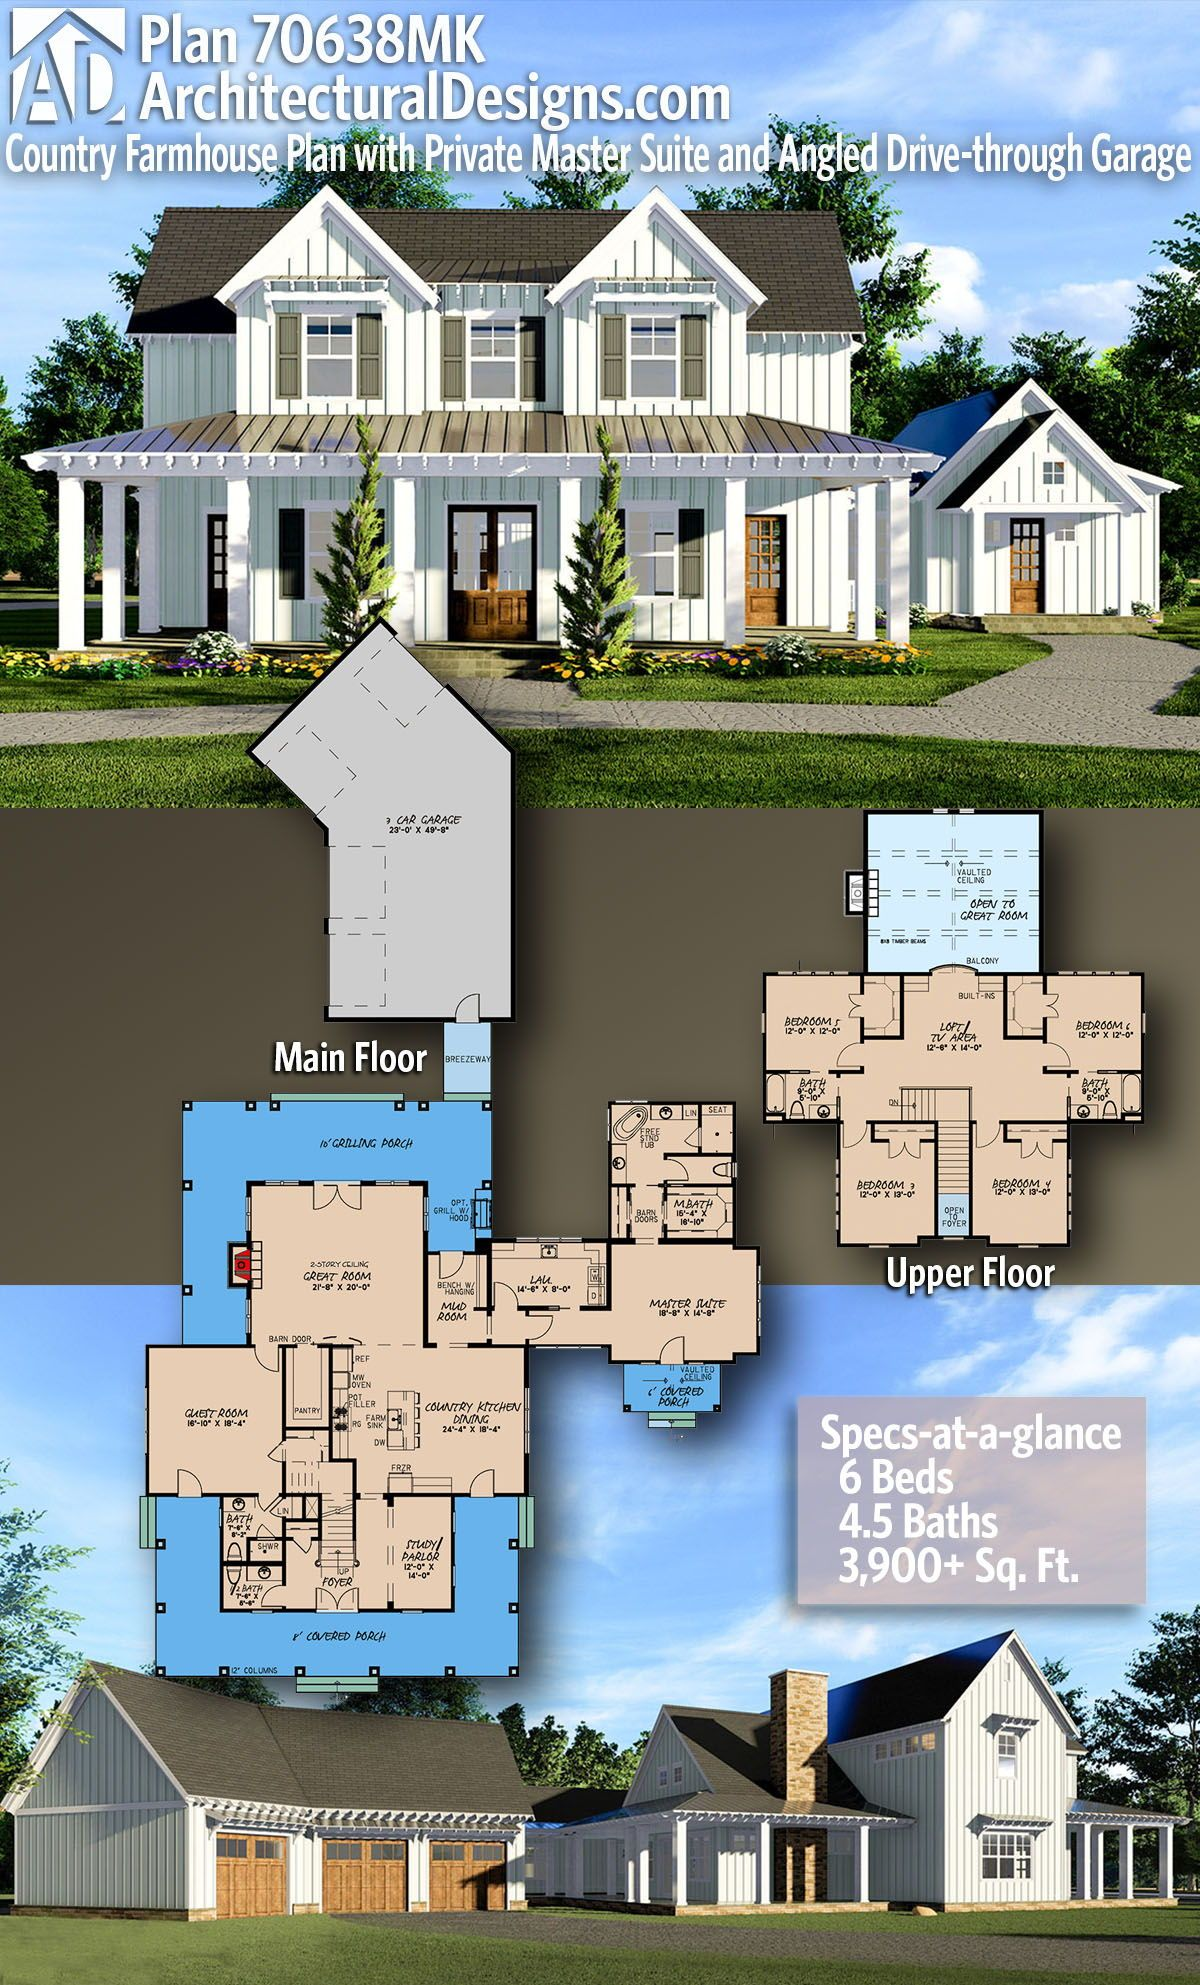 Architectural Designs - Selling quality house plan